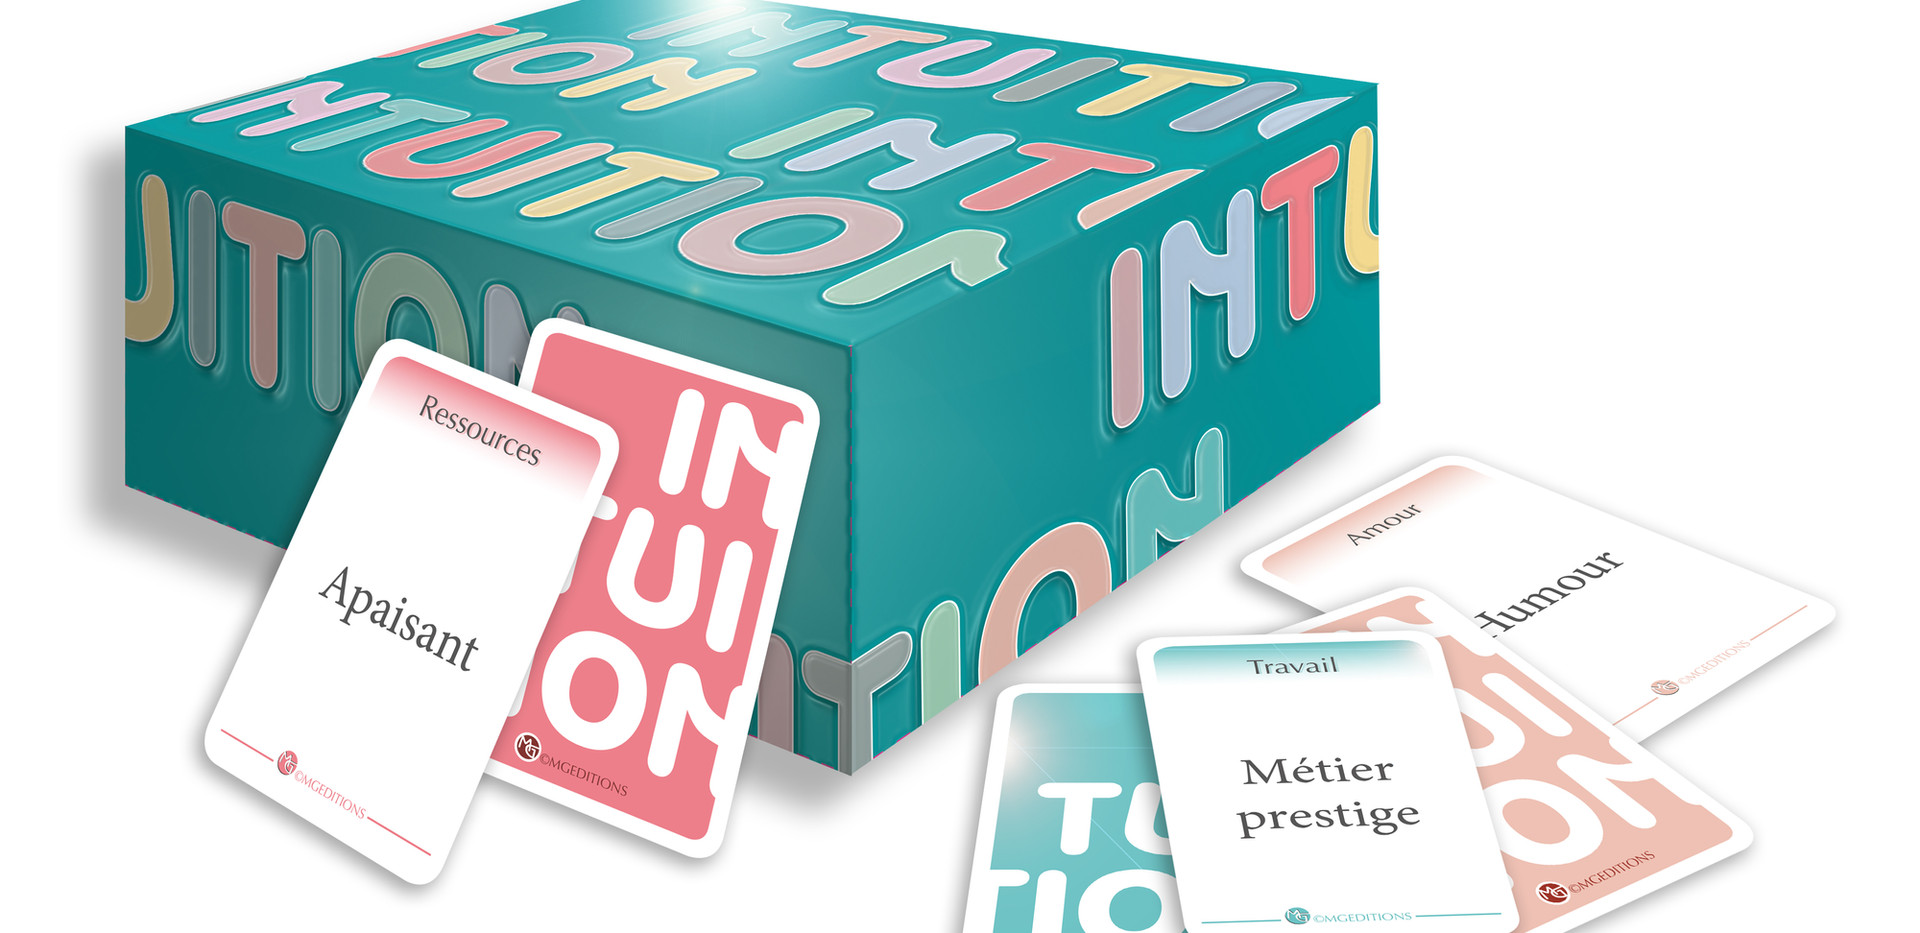 COFFRET INTUITION 3D + BRILLANT.jpg